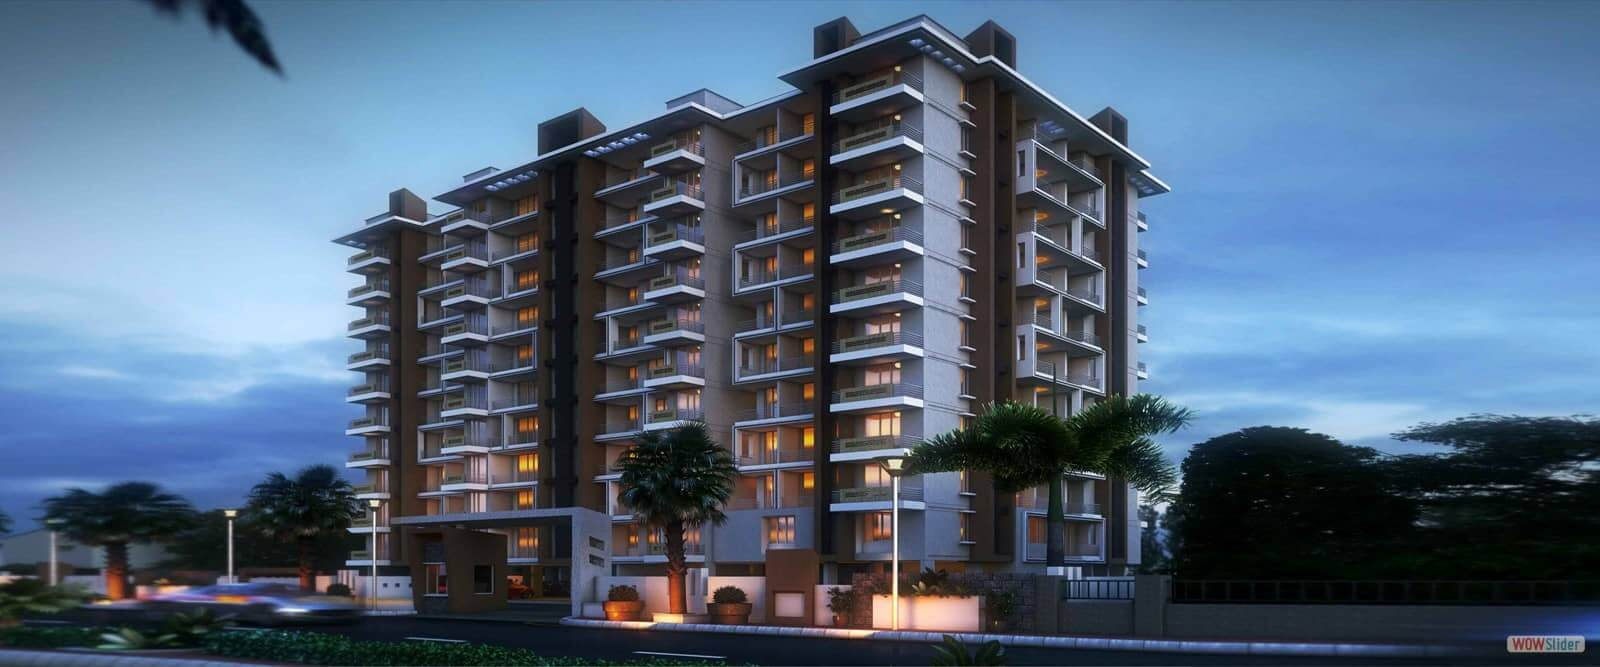 Flats in Udaipur for Rent